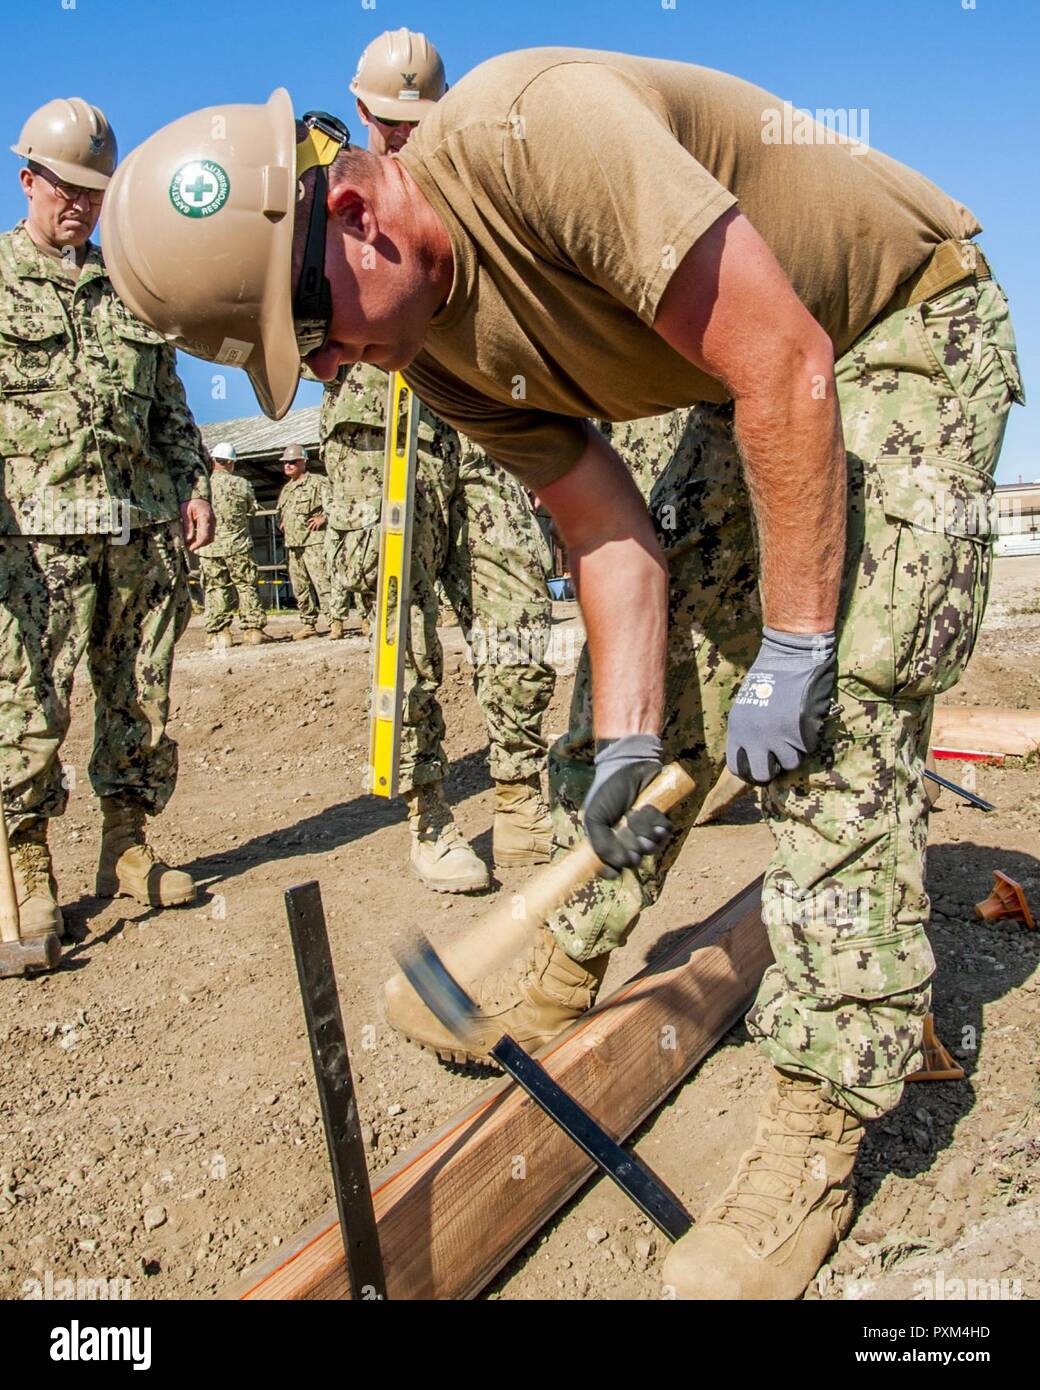 PORT HUENEME, Ca. (JUNE 9, 2017) – Petty Officer 1st Class Alan Eslinger with Naval Mobile Construction Battalion 18 (NMCB 18) hammers in a support bar for a concrete form as part of a driveway extension project. NMCB 18 is building the concrete driveway extension on Naval Base Ventura County. The base will utilize the driveway for movement and transportation operations. - Stock Image